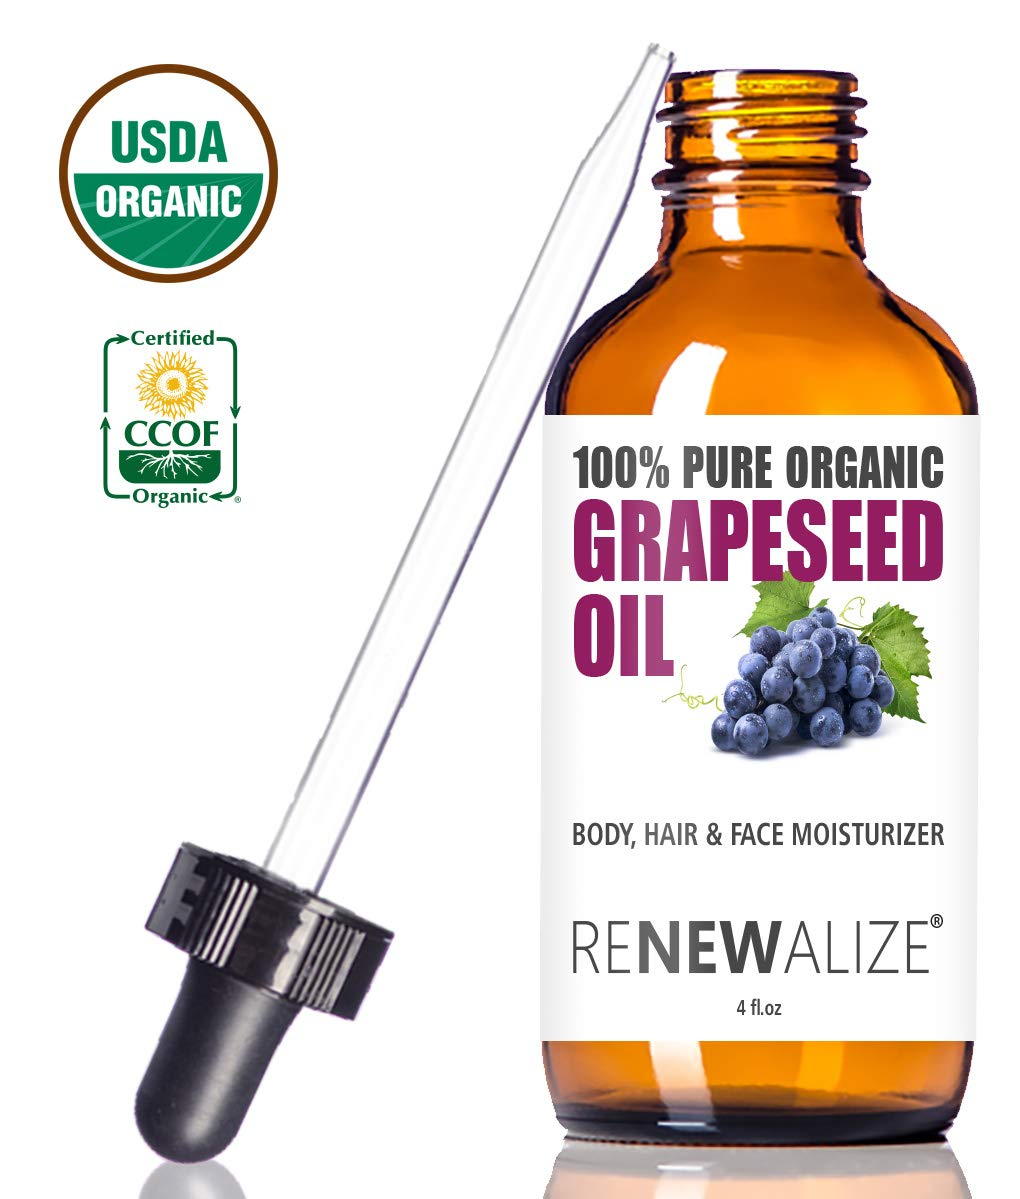 USDA Certified Organic GRAPESEED Oil Anti-Aging Moisturizer - Facial Cleanser in 4 oz Glass Bottle   Unrefined, Cold Pressed Grape Seed Oil   Essential to Reduce Skin Wrinkles and Stretch Marks